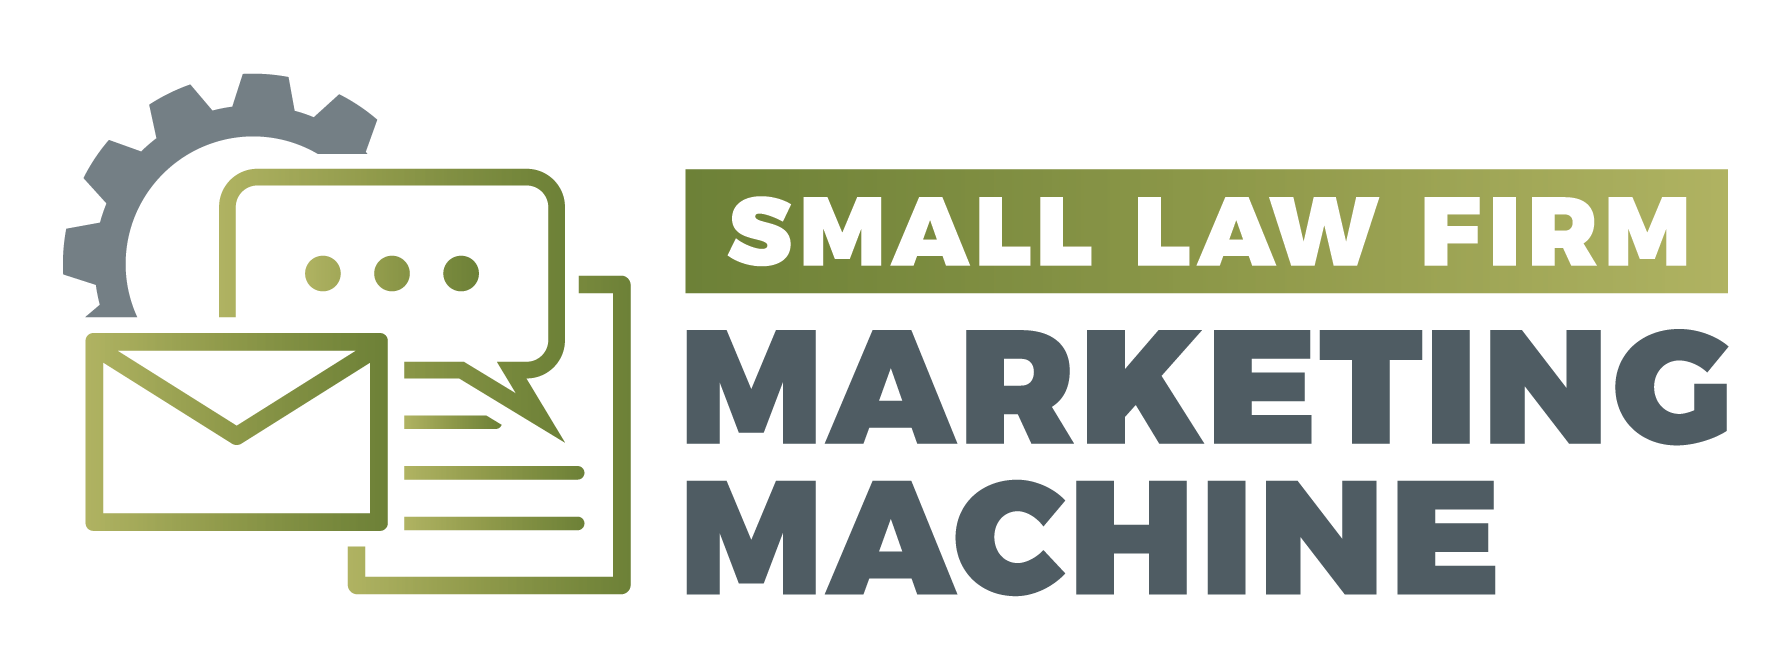 small law firm marketing machine logo